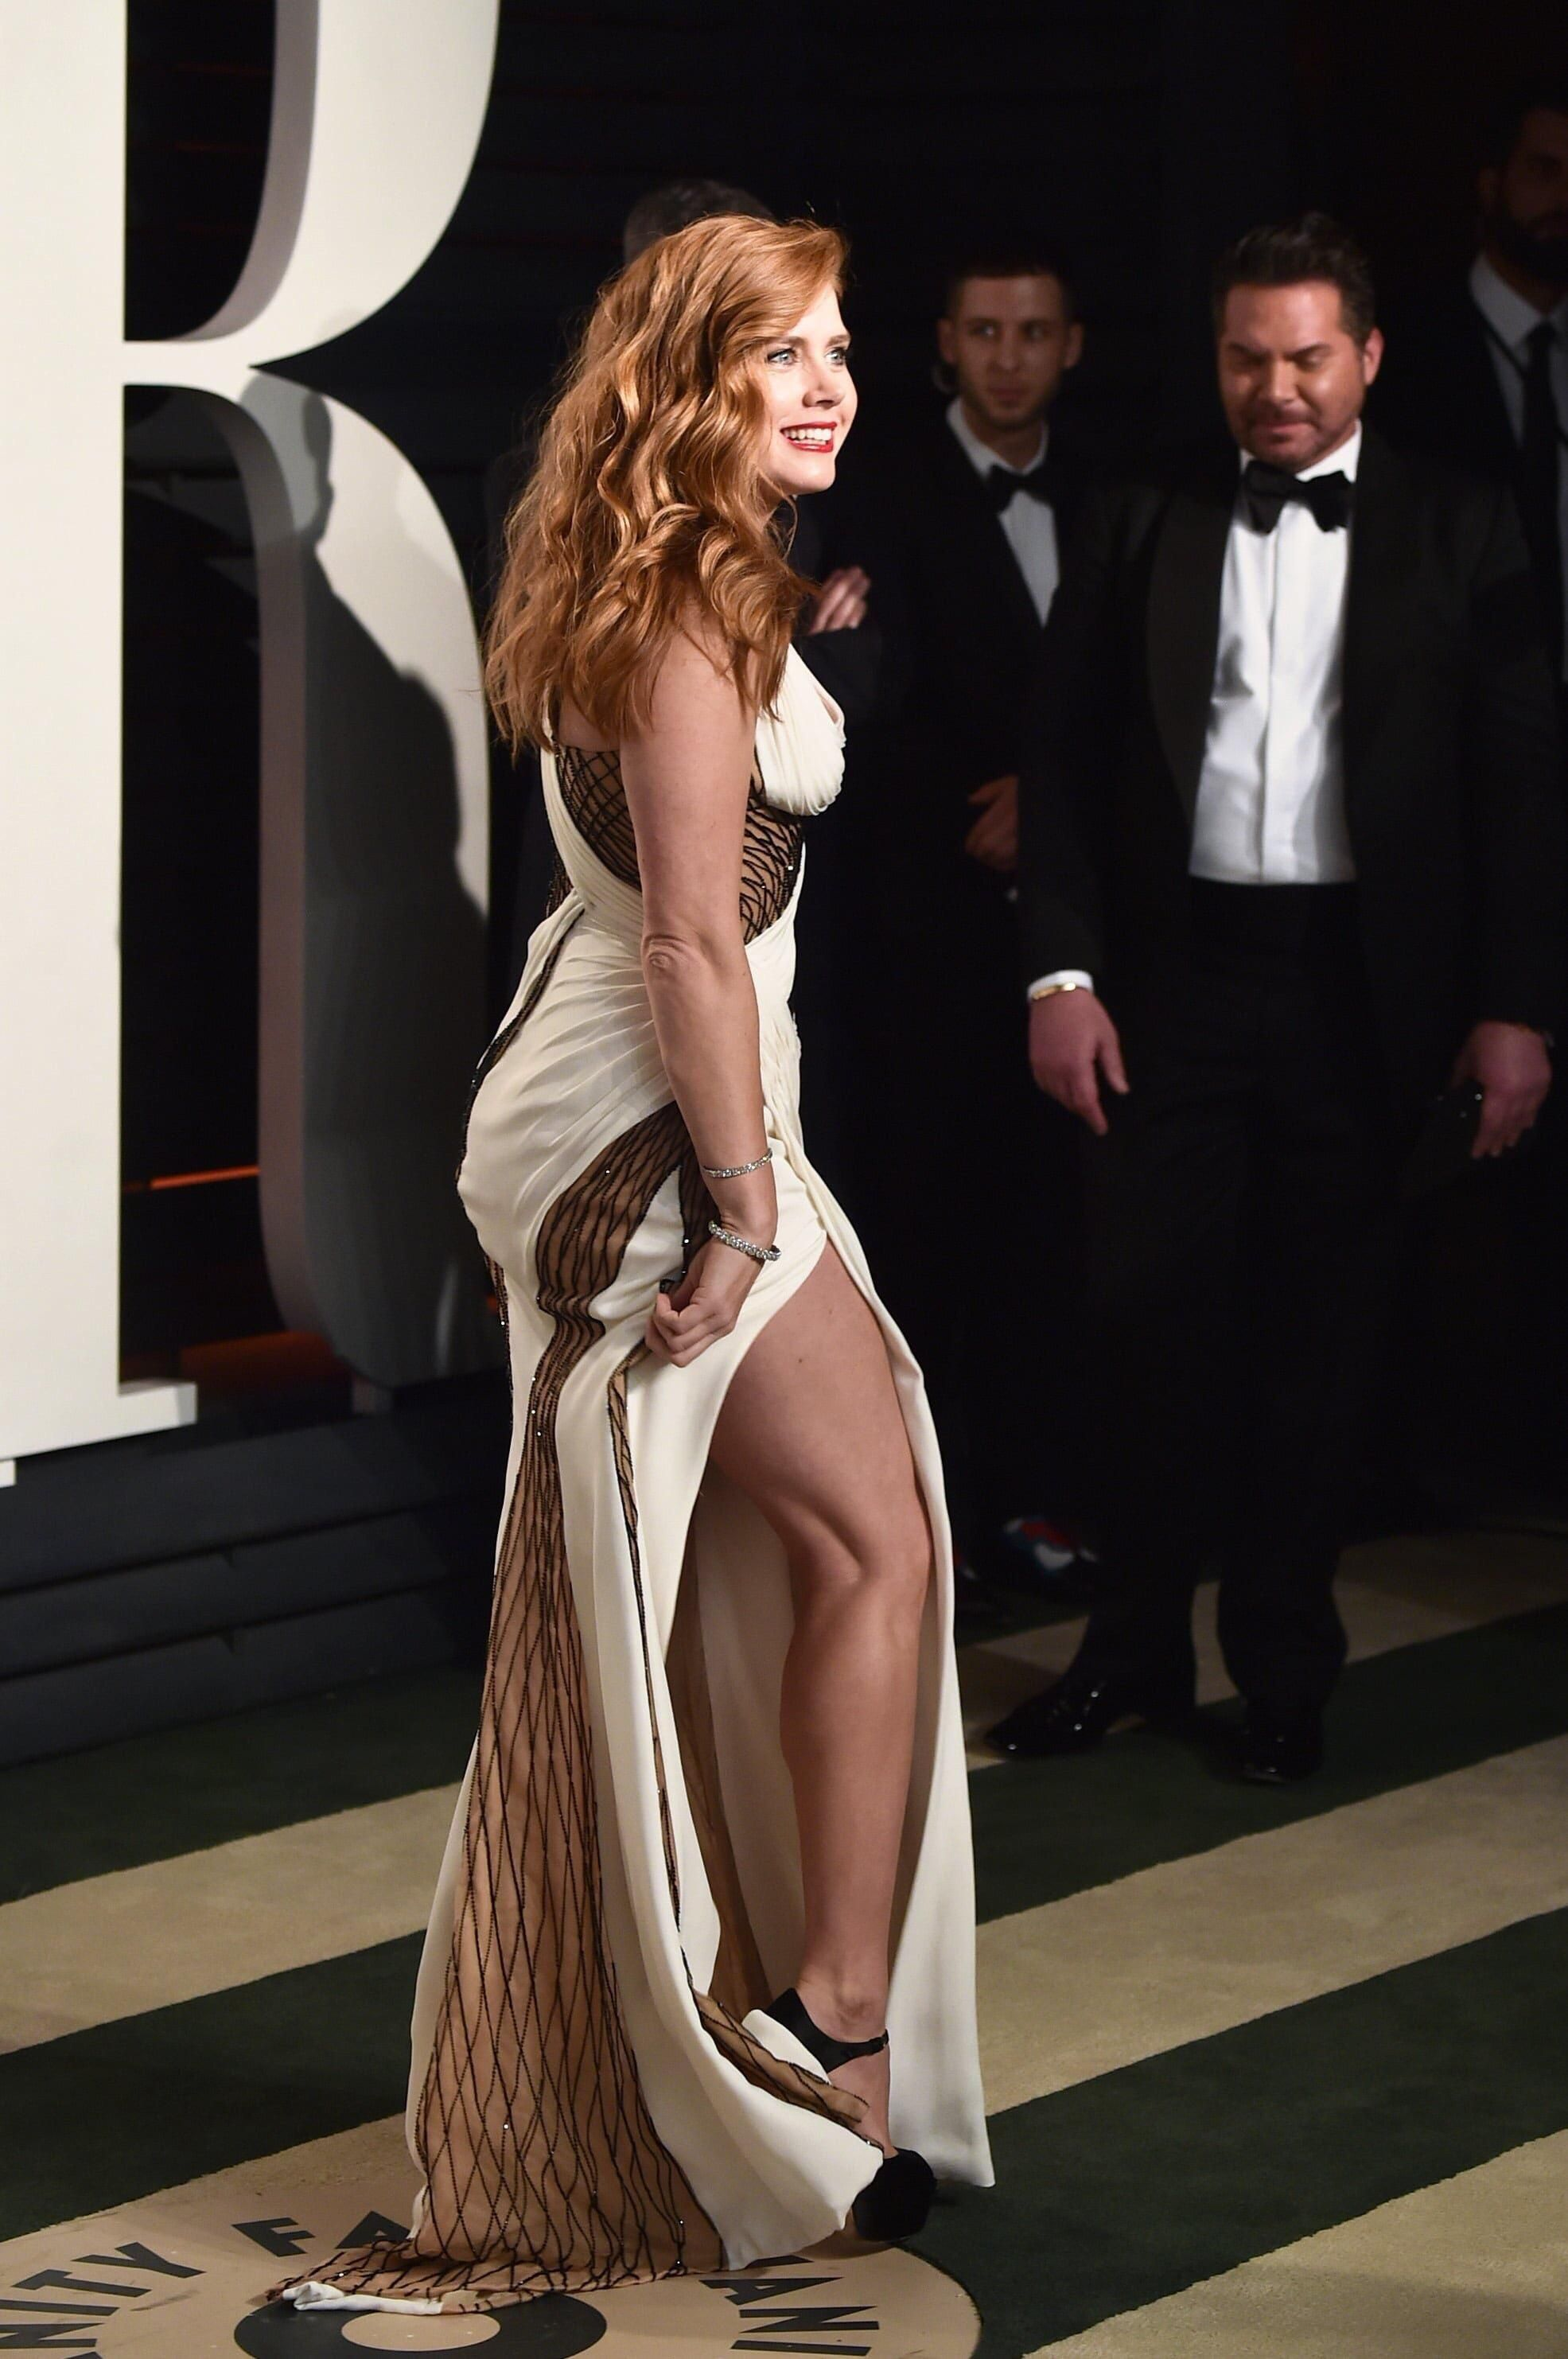 Amy Adams Looking Hot In That Dress For More Hot Pics Check